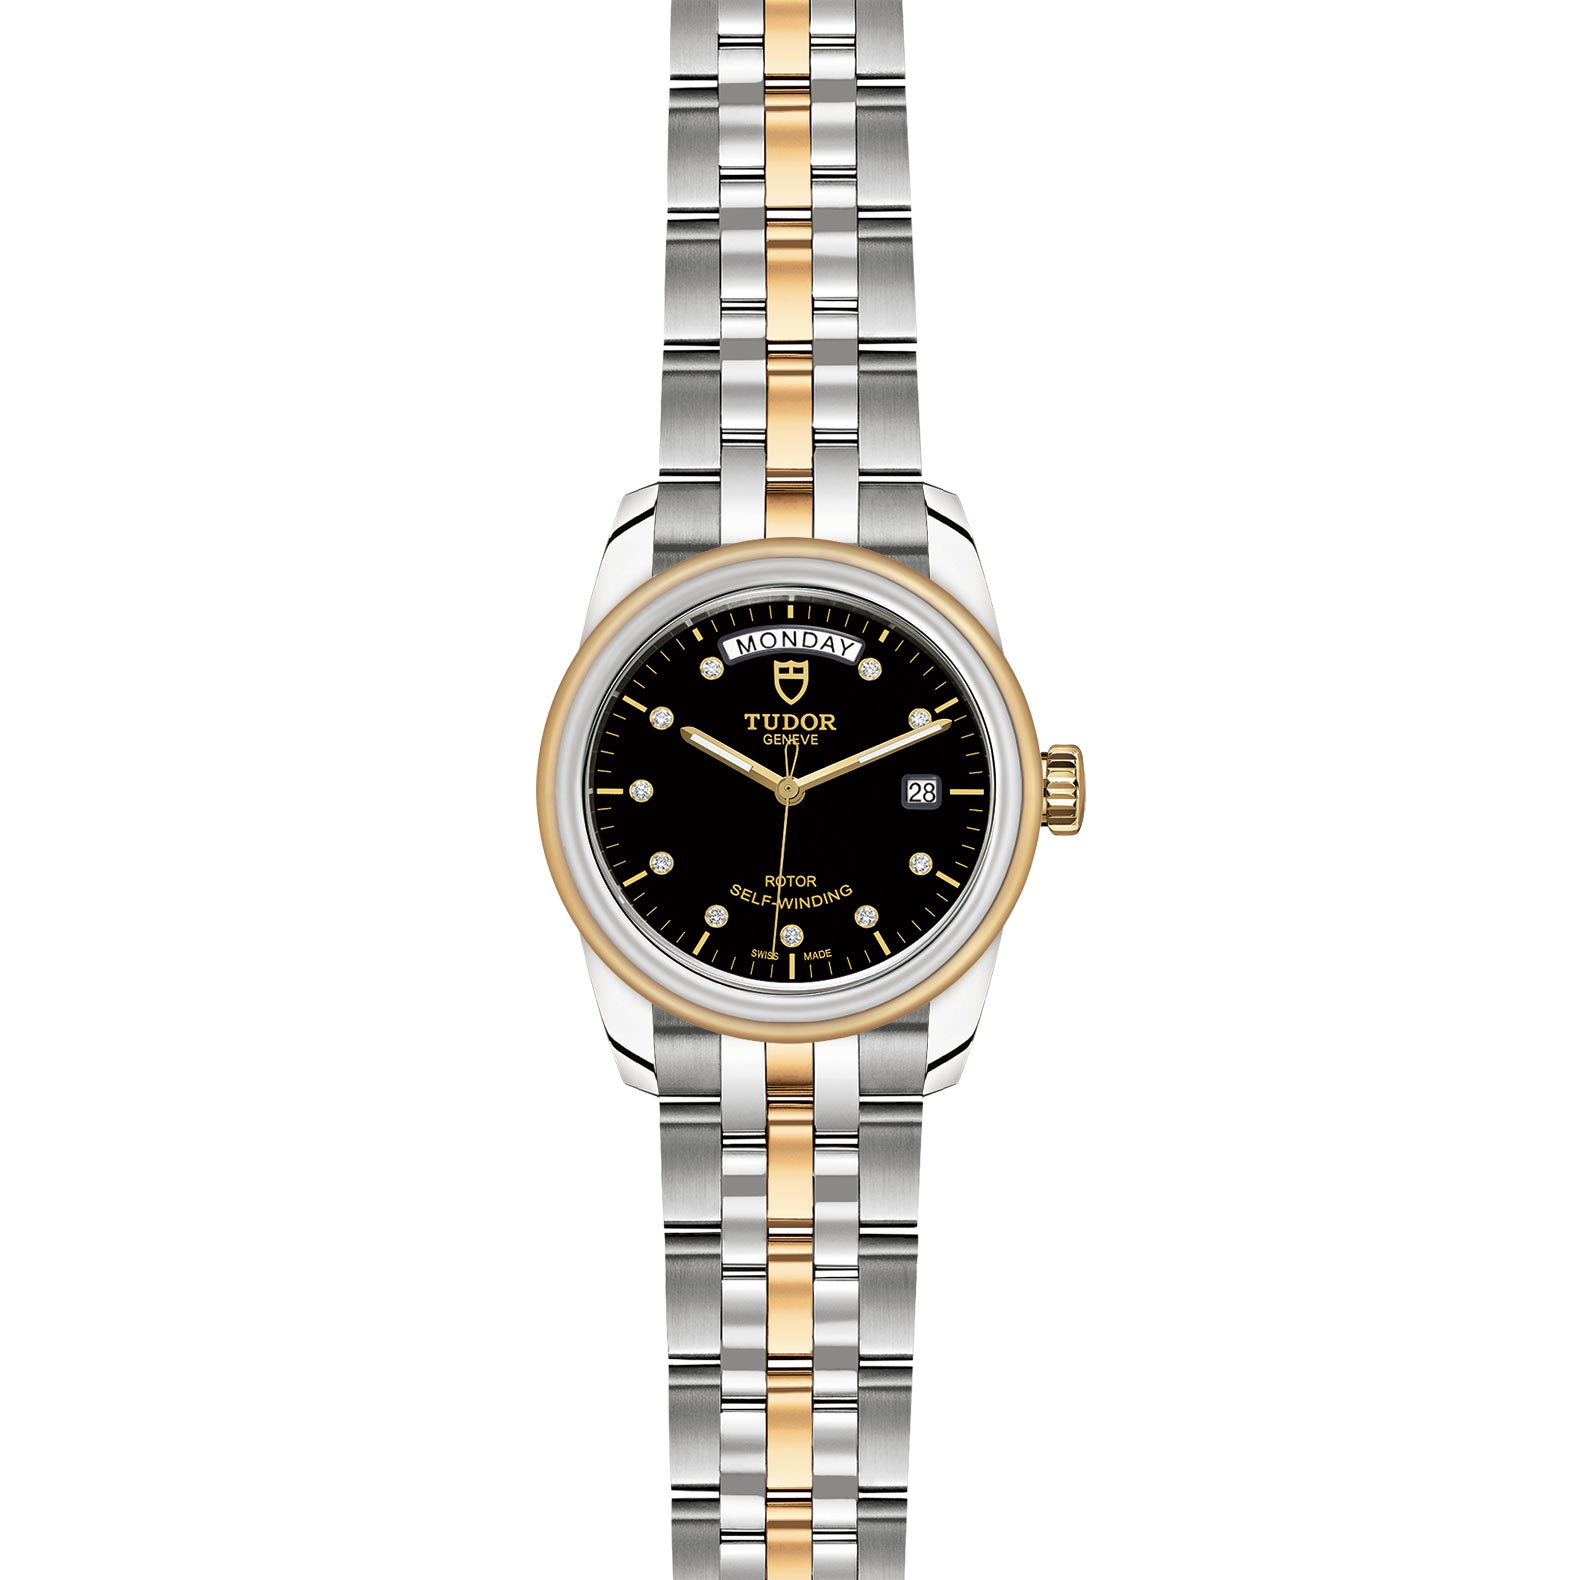 TUDOR Glamour Date Day M56003 0008 Frontfacing